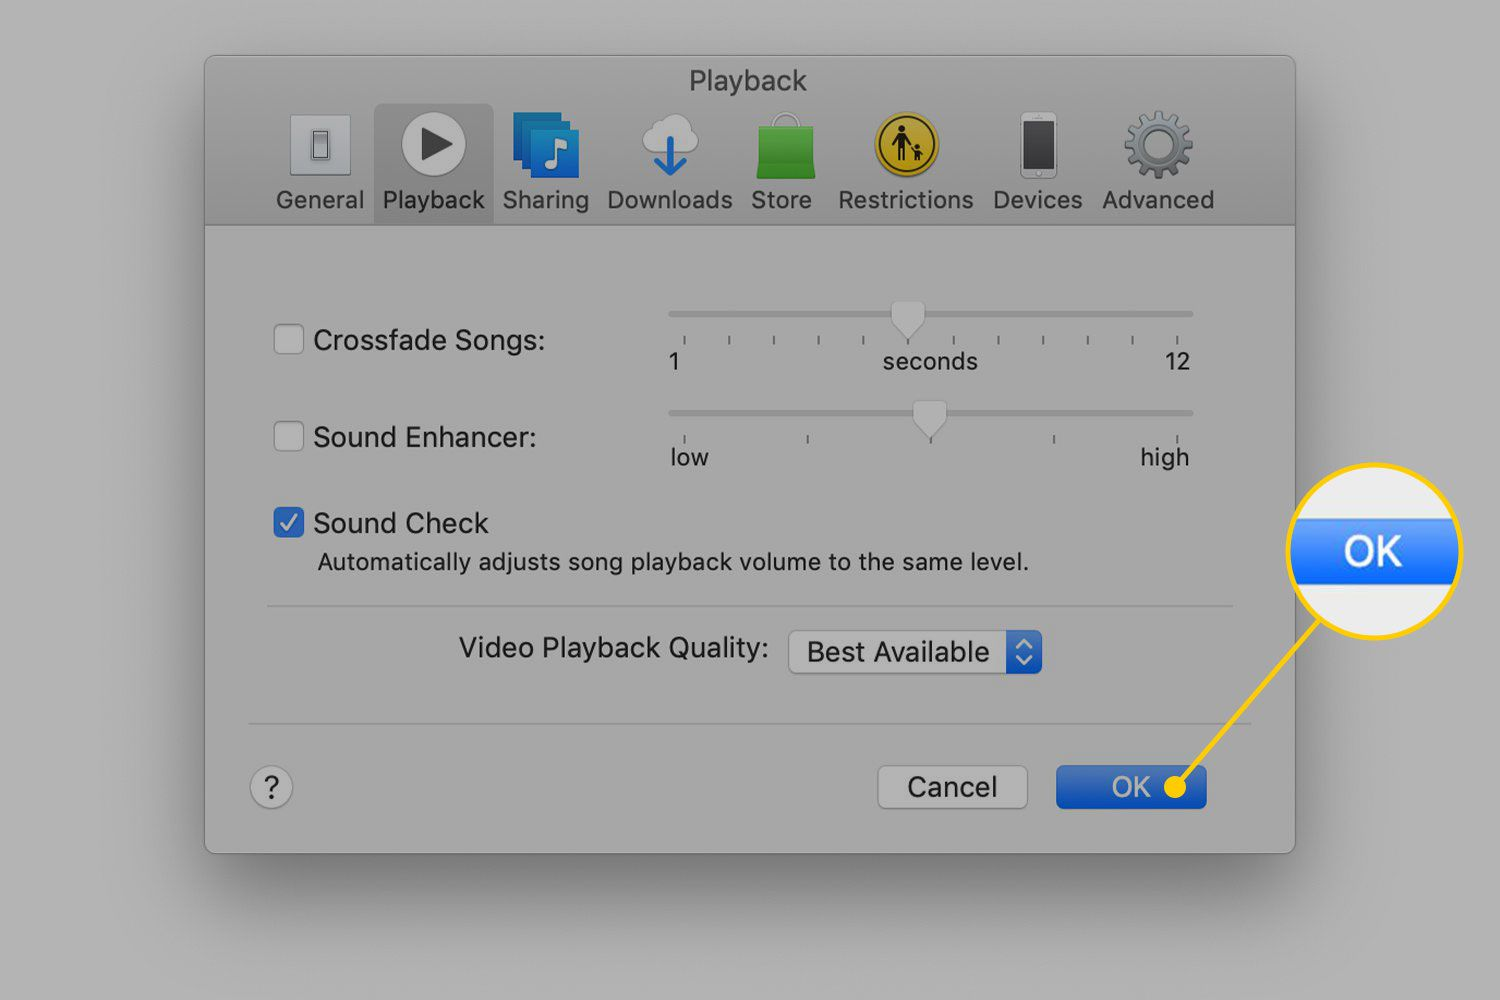 OK button in iTunes settings